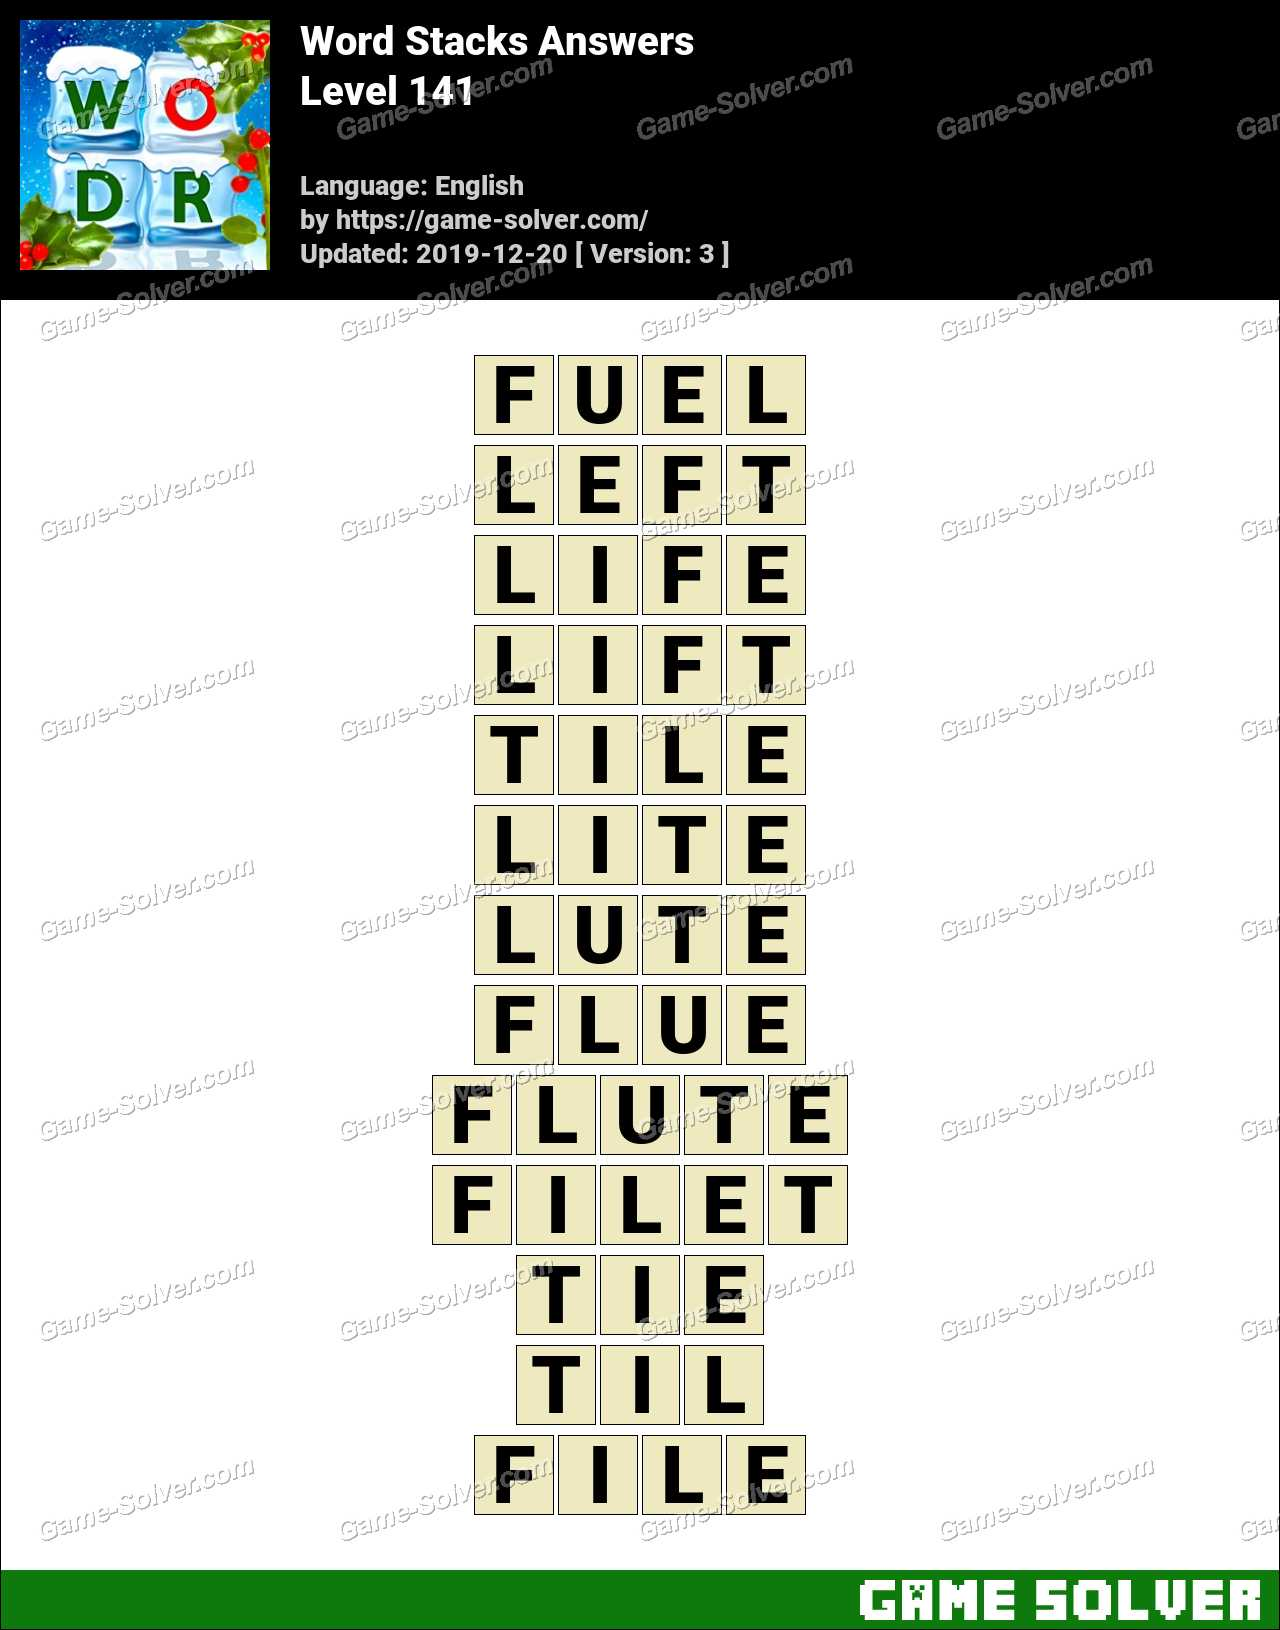 Word Stacks Level 141 Answers